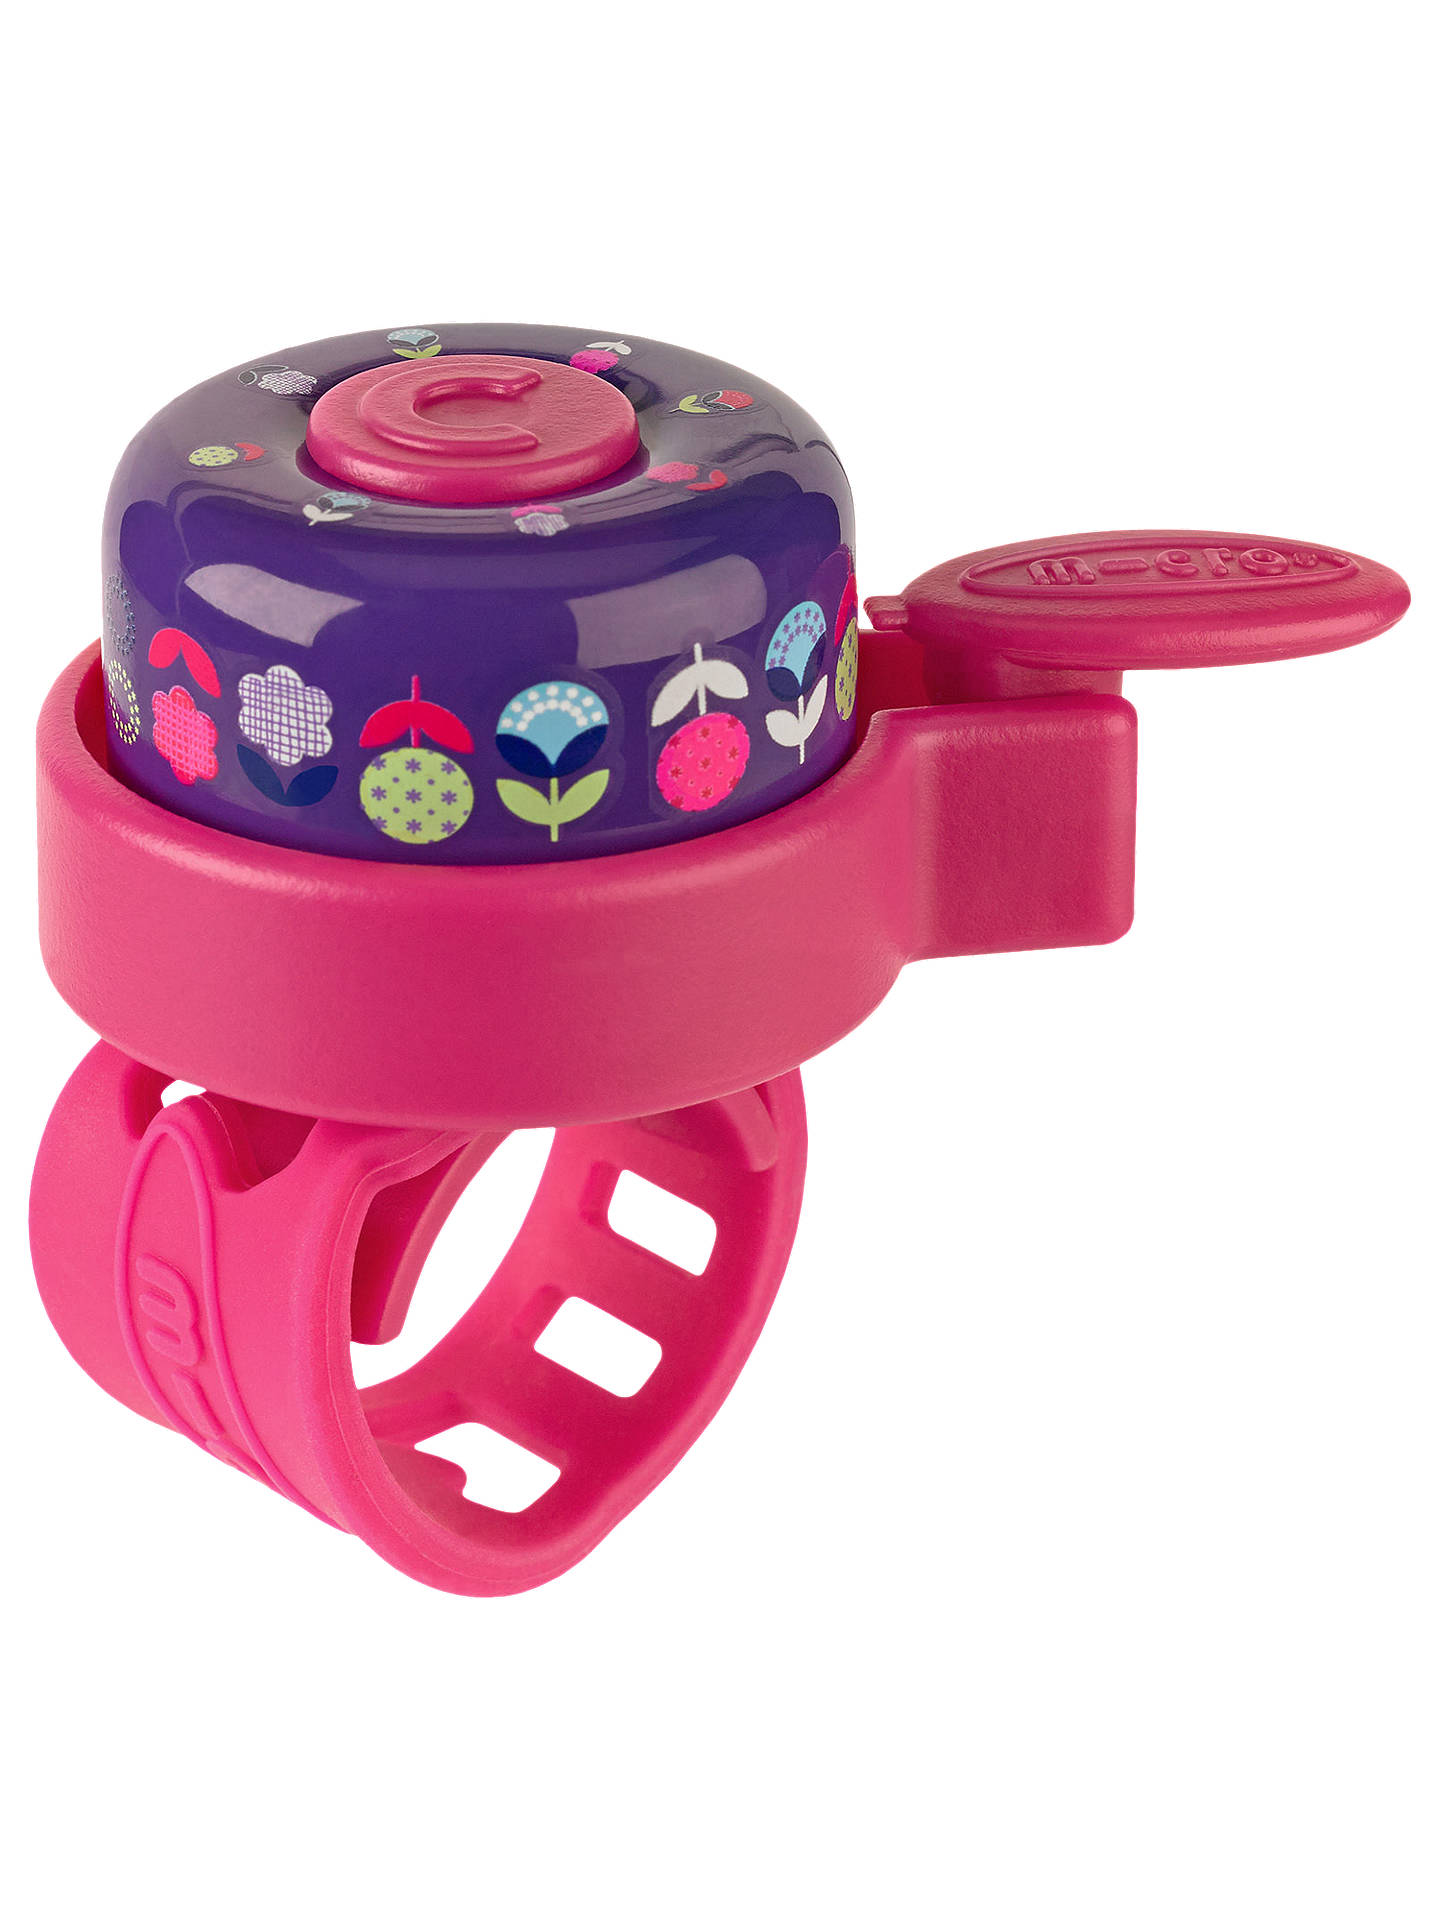 BuyMicro Scooter Floral Bell, Pink/Purple Online at johnlewis.com